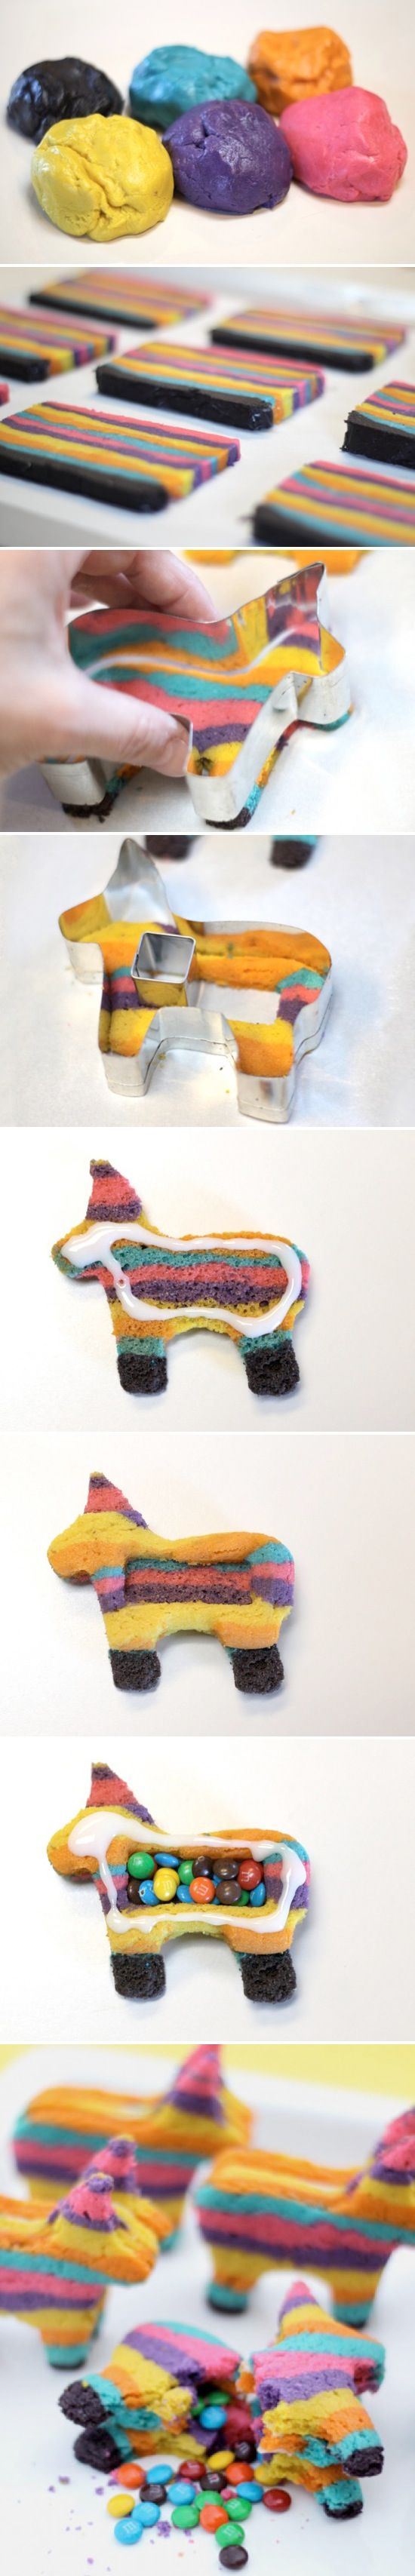 Pinata Cookies! might attempt this one day,,, haha